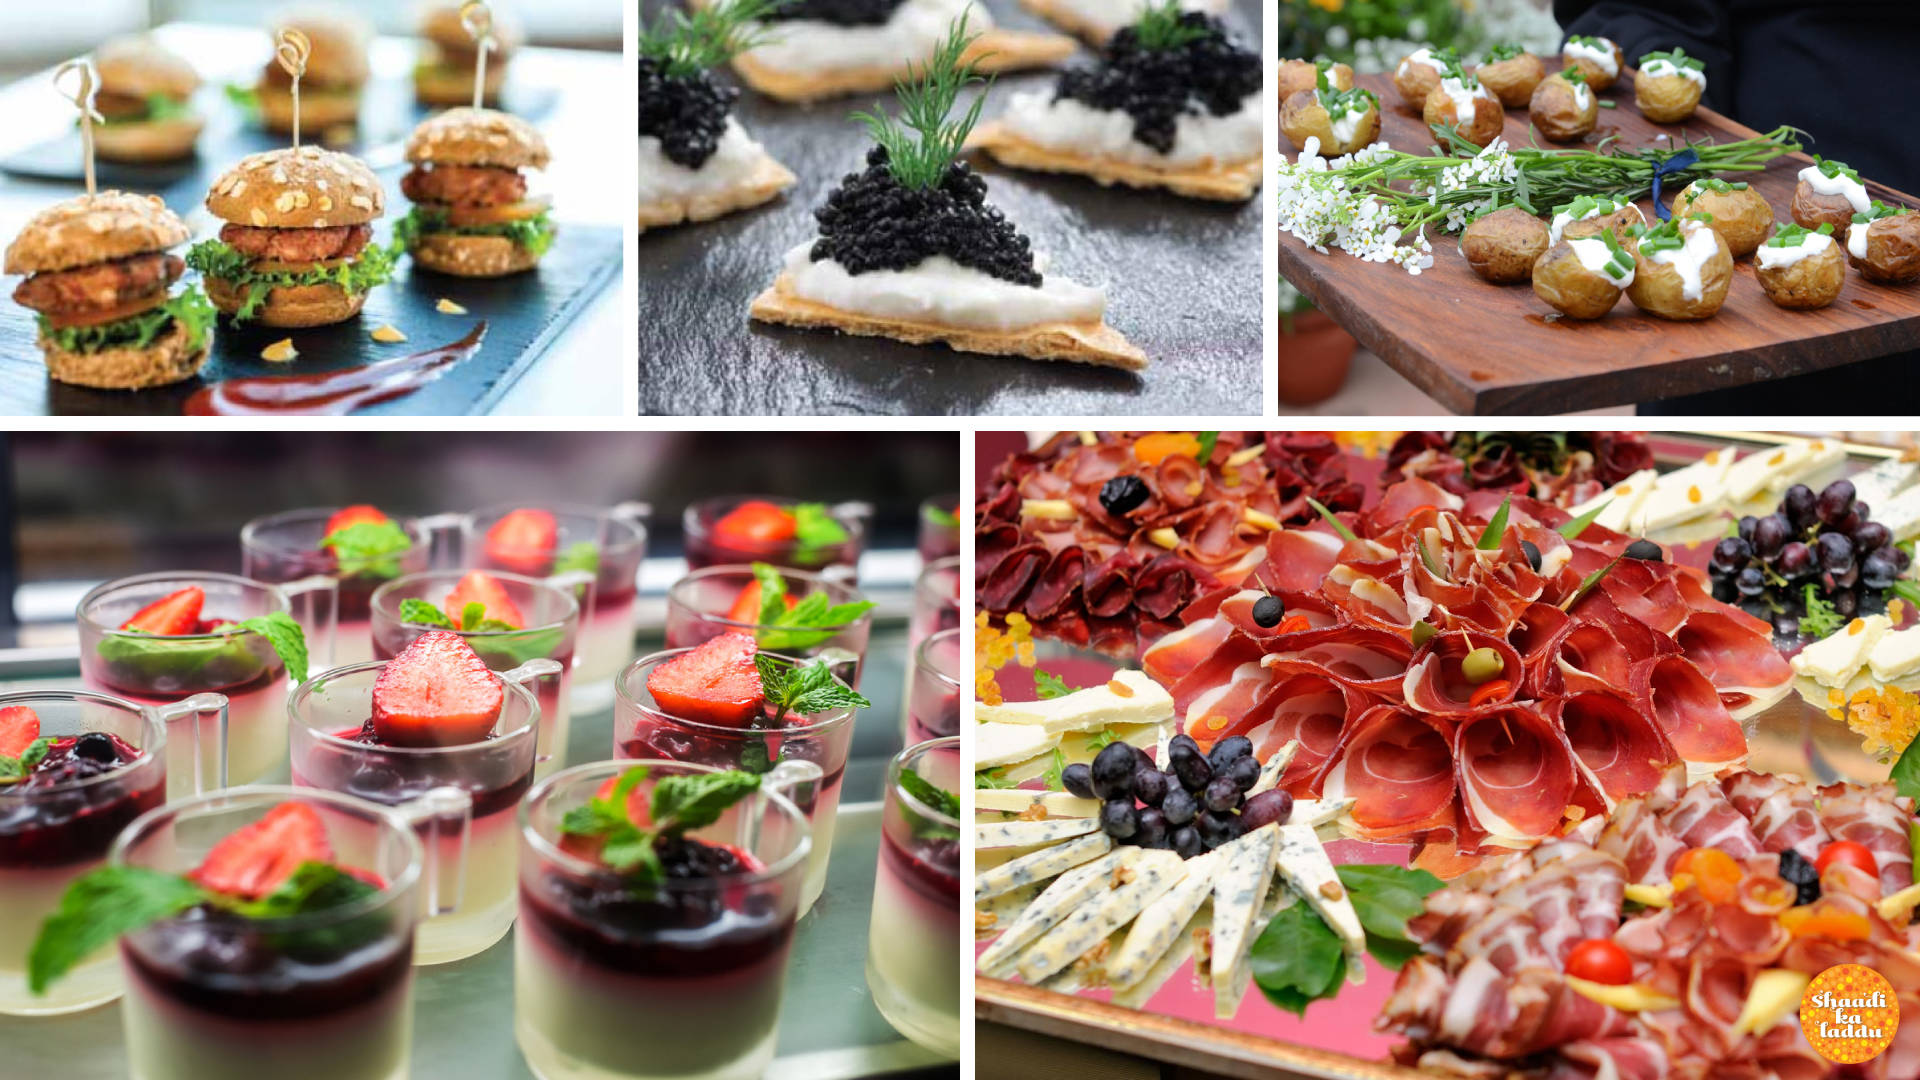 CAARA catering services